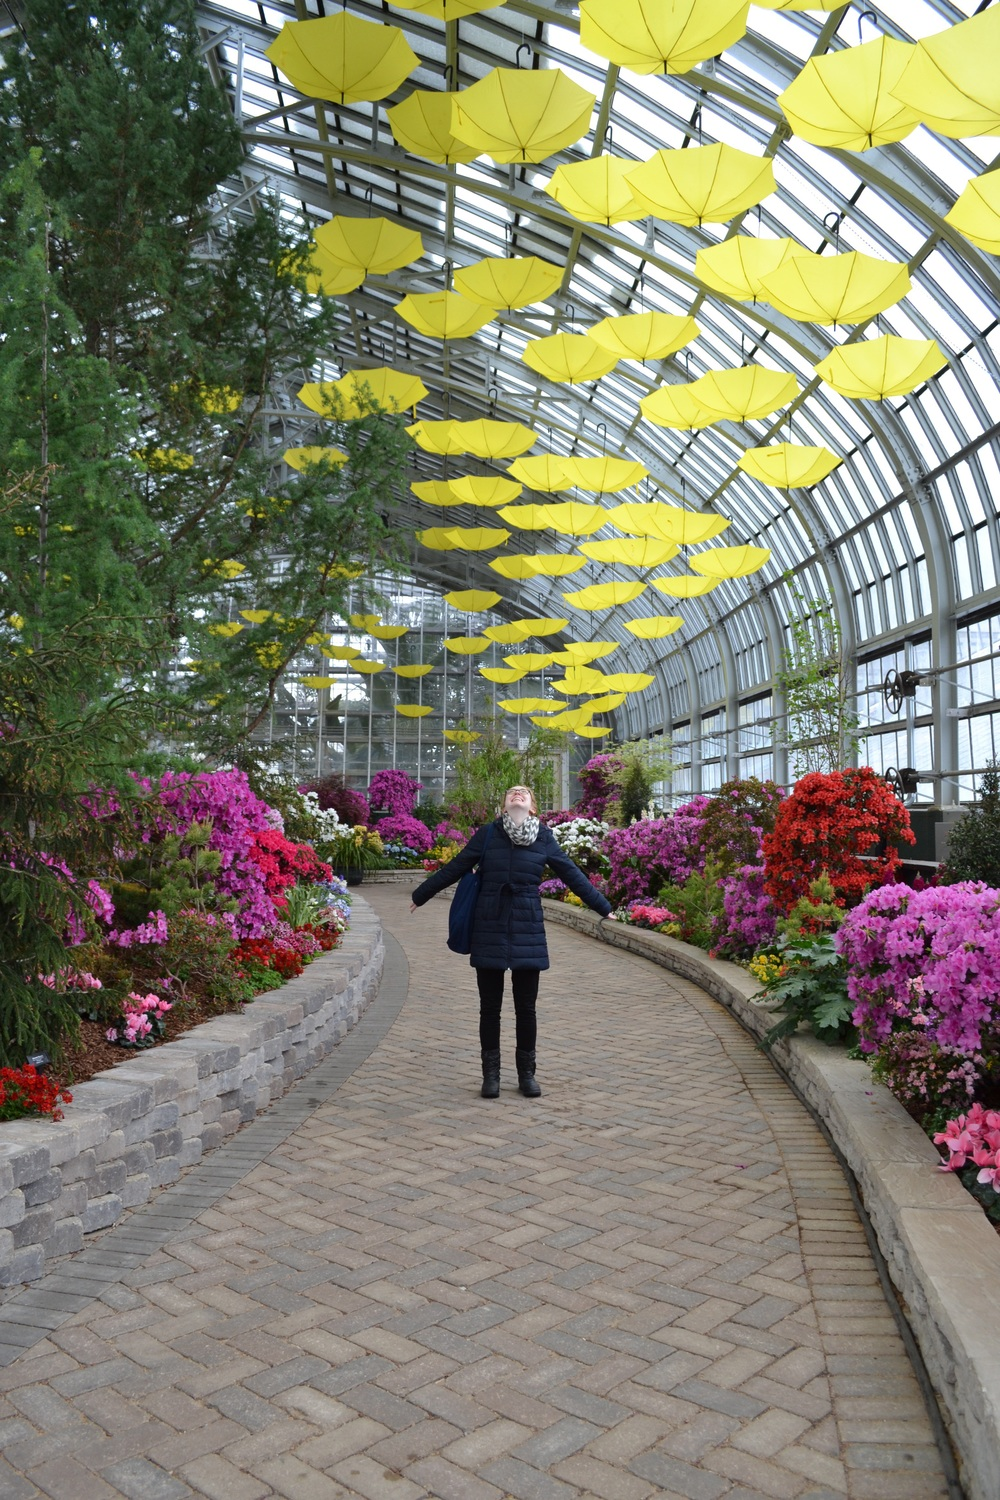 In flower heaven at the Garfield Conservatory